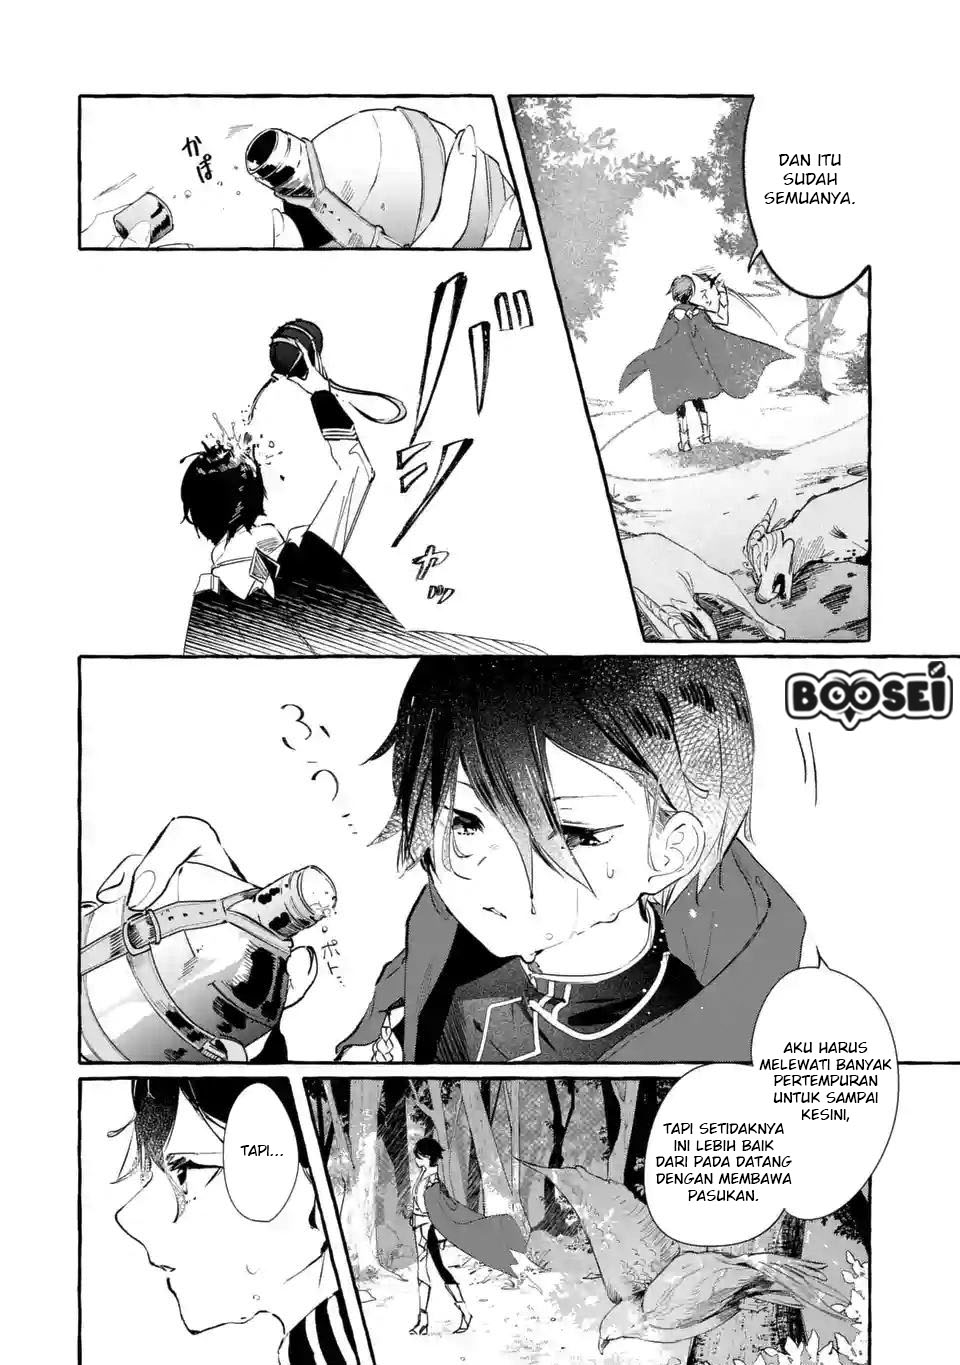 Spoiler Manga Saikyou Mahoushi no Inton Keikaku: The Alternative 1